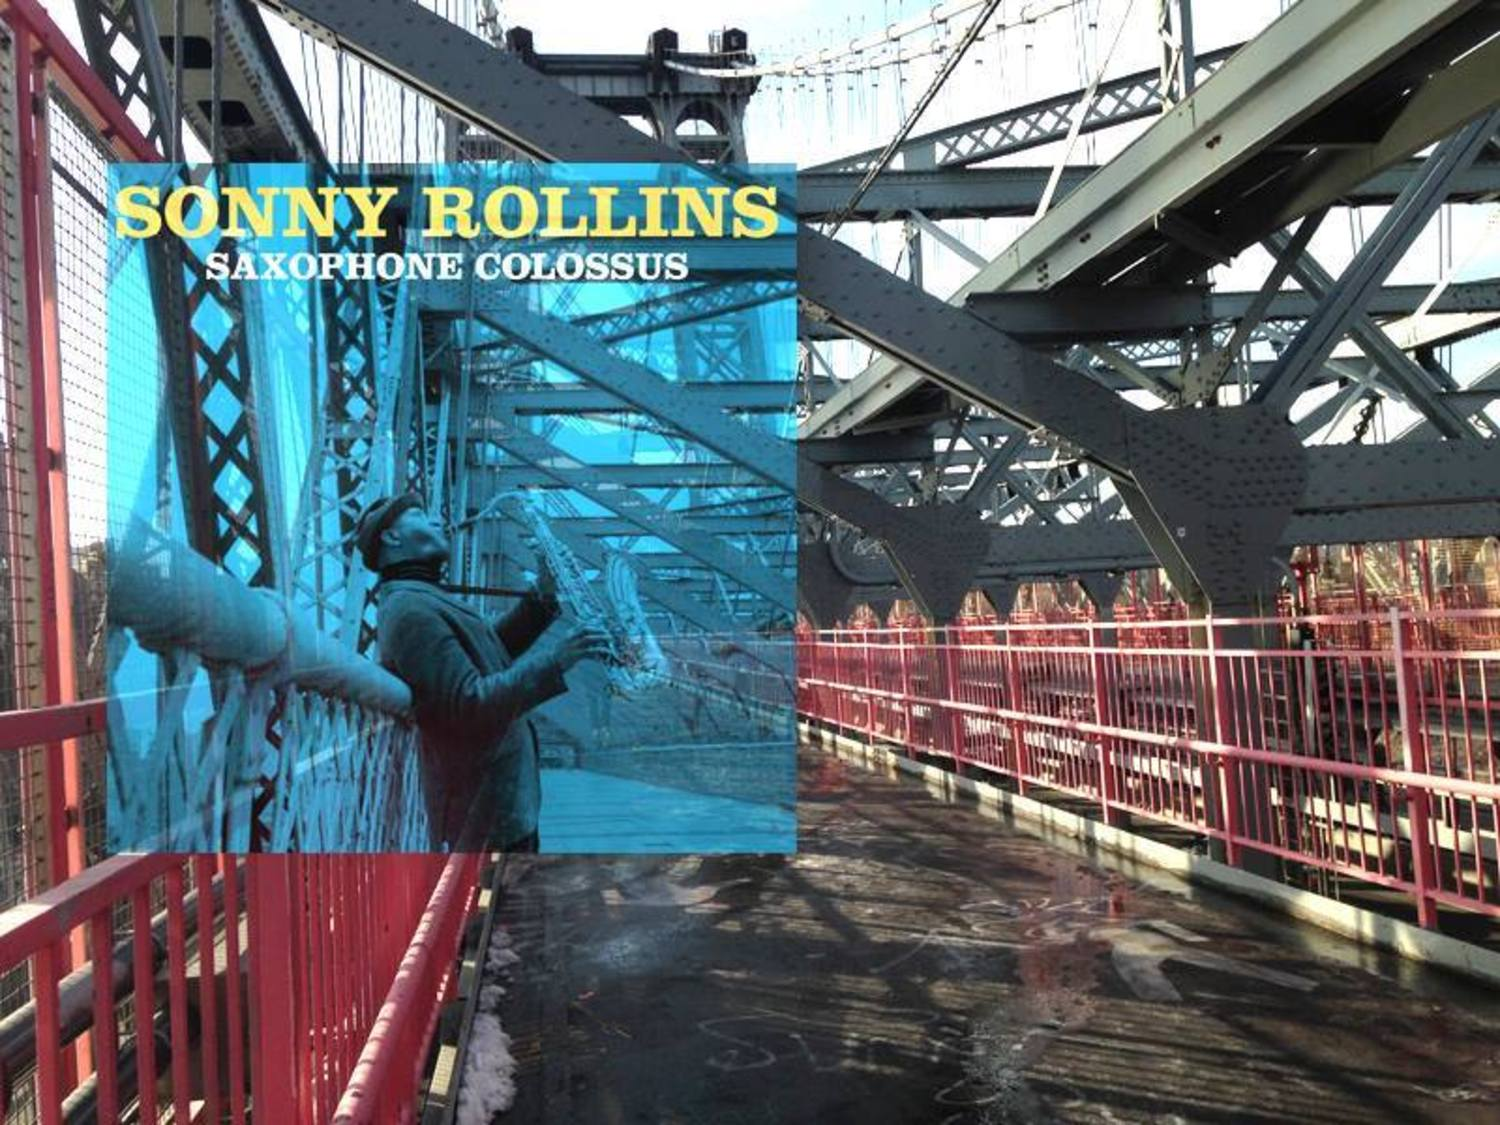 "SONNY ROLLINS: Saxophone Colossus (Prestige Records;1956) . . . .Location: At the highest point of the Williamsburg Bridge between Manhattan and Brooklyn, south side. . .""Saxophone Colossus is a studio album by American jazz saxophonist Sonny Rollins. It was recorded on June 22, 1956, with producers Bob Weinstock and Rudy Van Gelder at the latter's studio in Hackensack, New Jersey. Rollins led a quartet on the album that included pianist Tommy Flanagan, bassist Doug Watkins, and drummer Max Roach"" (Wiki). (photographer unknown; design: Tom Hannan)(location research by Bill Jobson)."